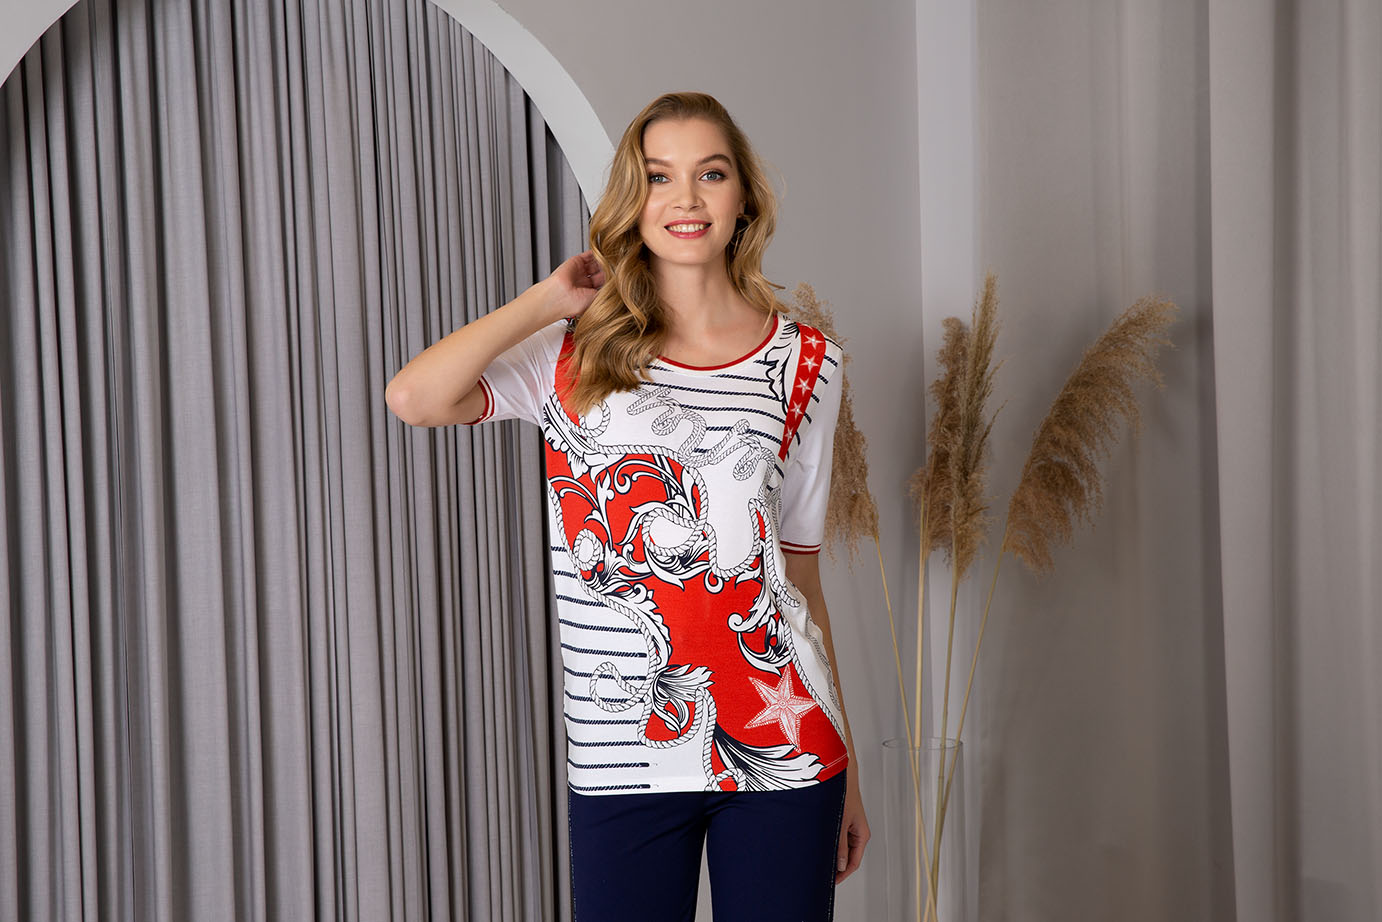 Passioni t shirt 3016 red white